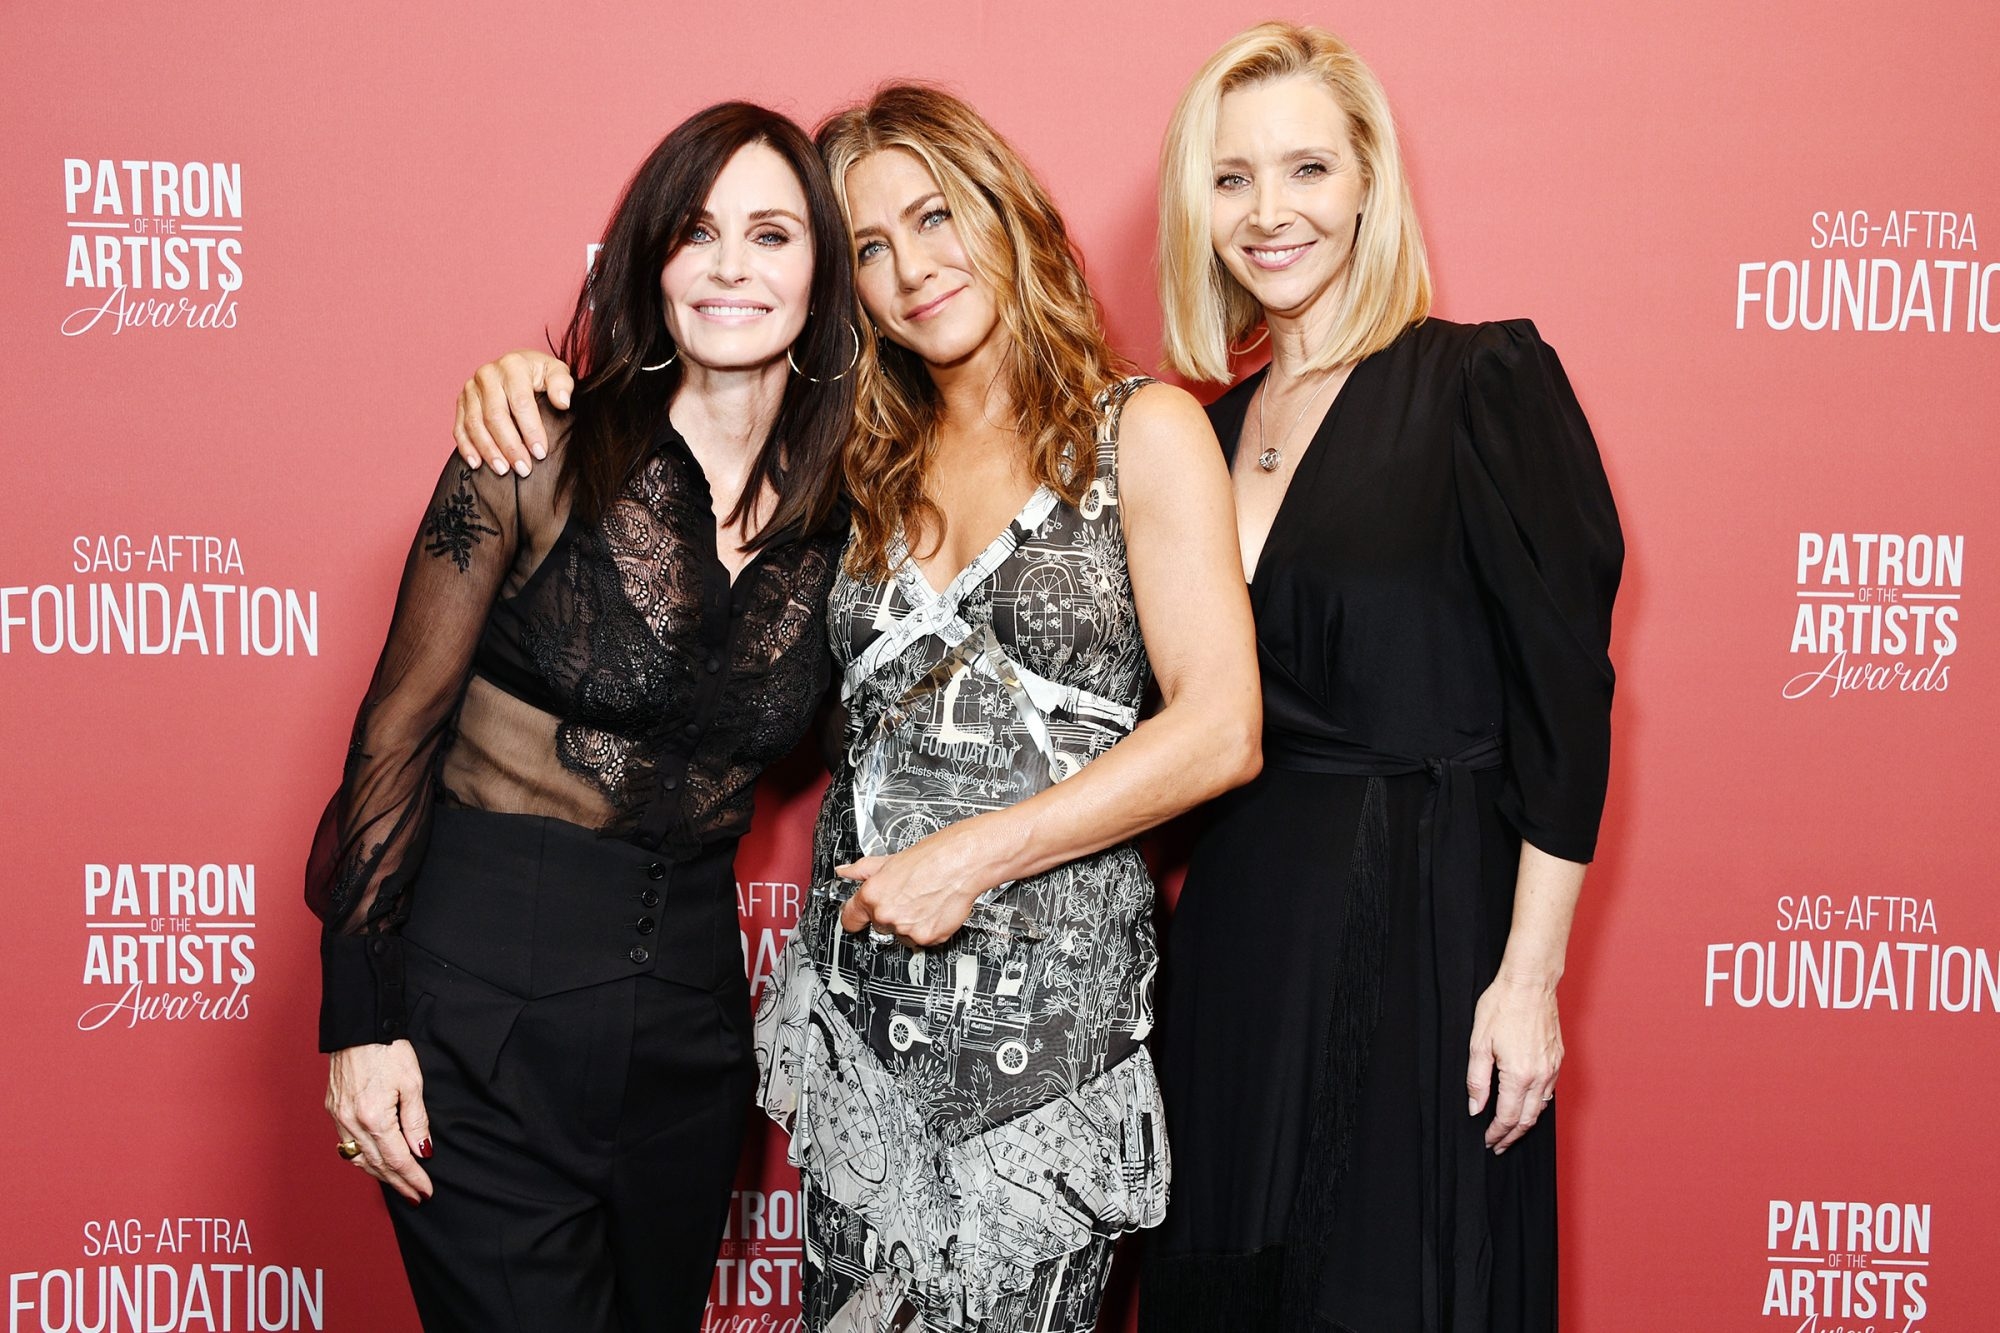 Courteney Cox, winner of the 'Artists Inspiration Award' Jennifer Aniston and Lisa Kudrow attend SAG-AFTRA Foundation's 4th Annual Patron of the Artists Awards at Wallis Annenberg Center for the Performing Arts on November 07, 2019 in Beverly Hills